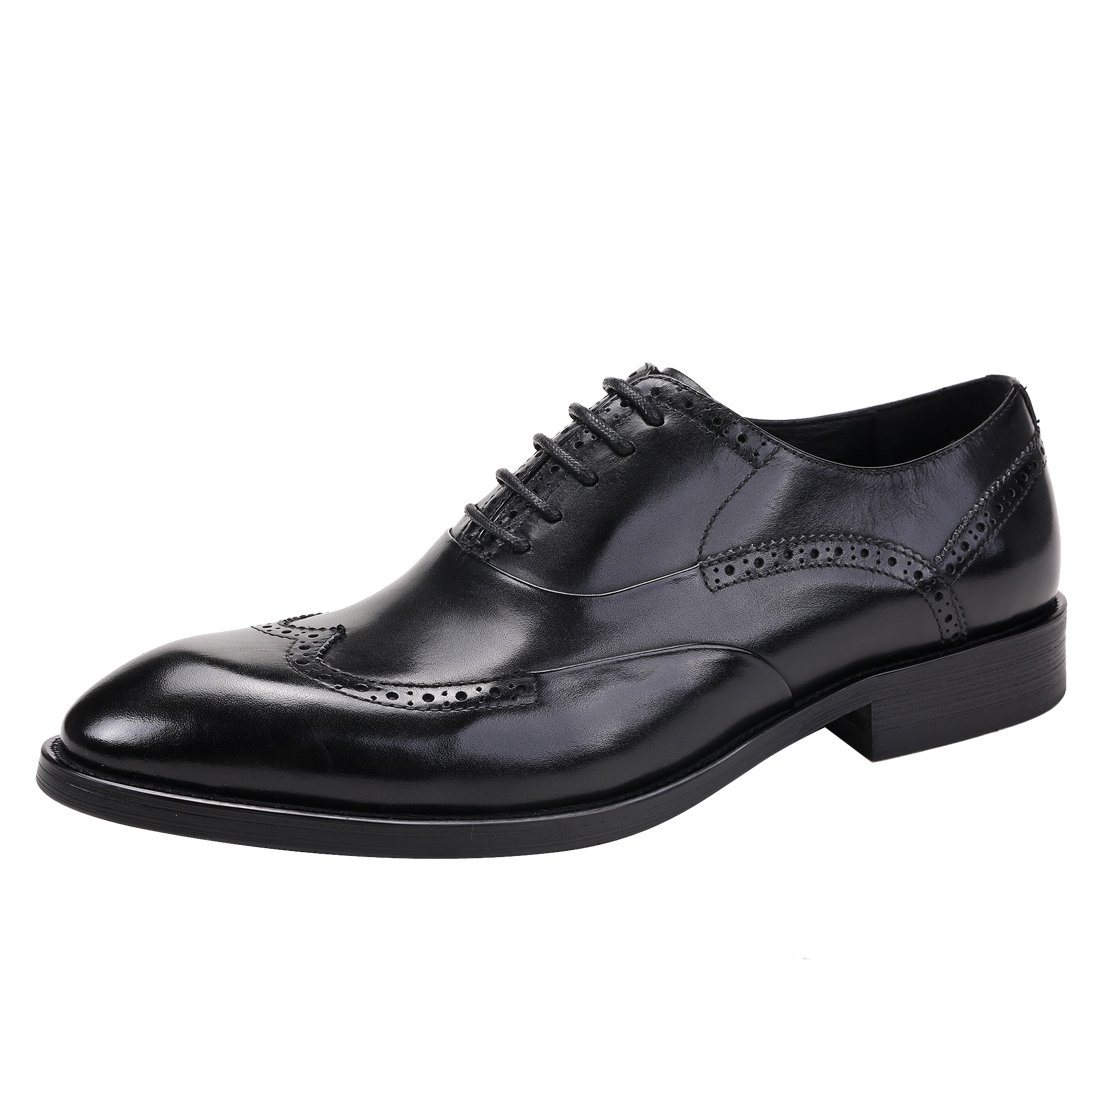 Black Genuine Leather Brogue for Mens Business Wedding Oxford Formal Up Lace shoes Party for